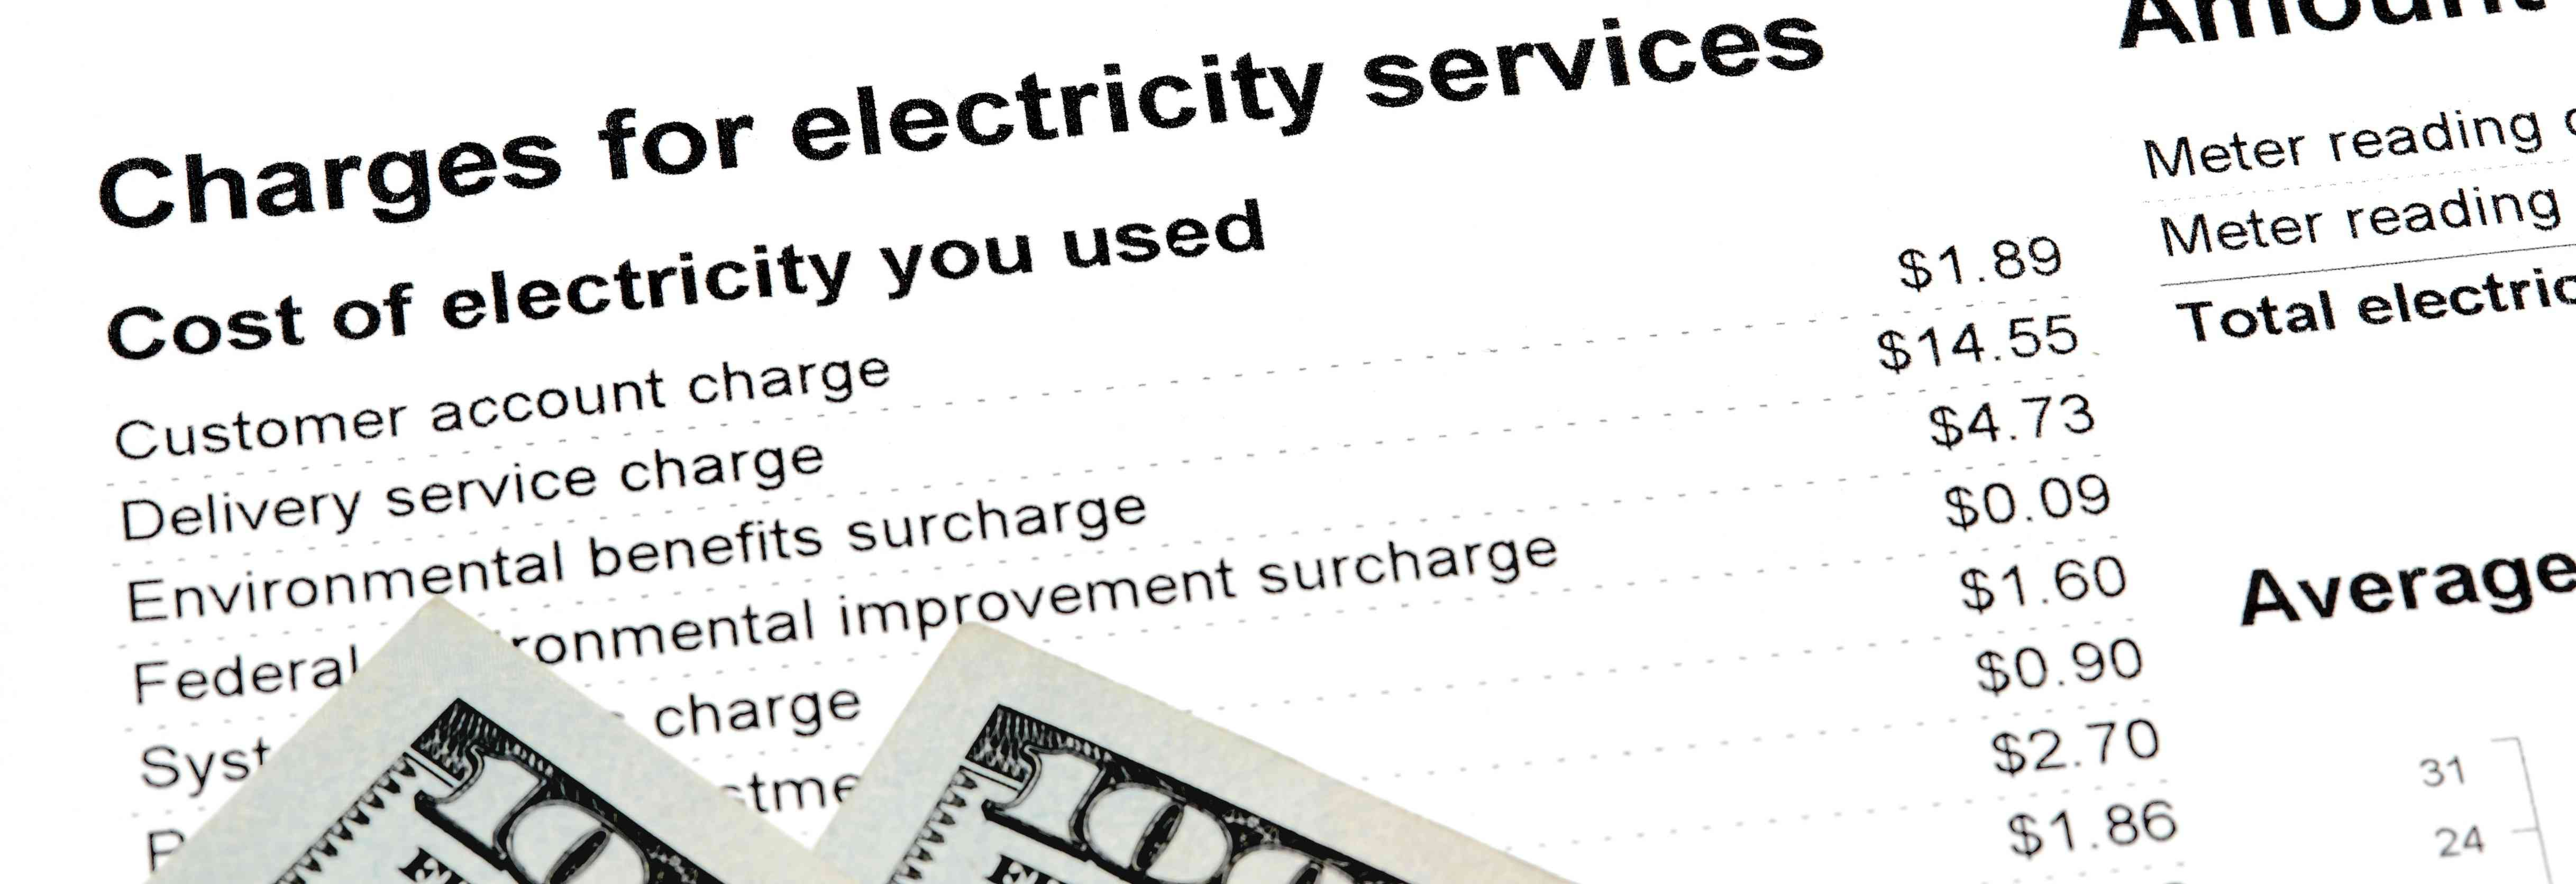 Sample electric bill with $100 bills on top.